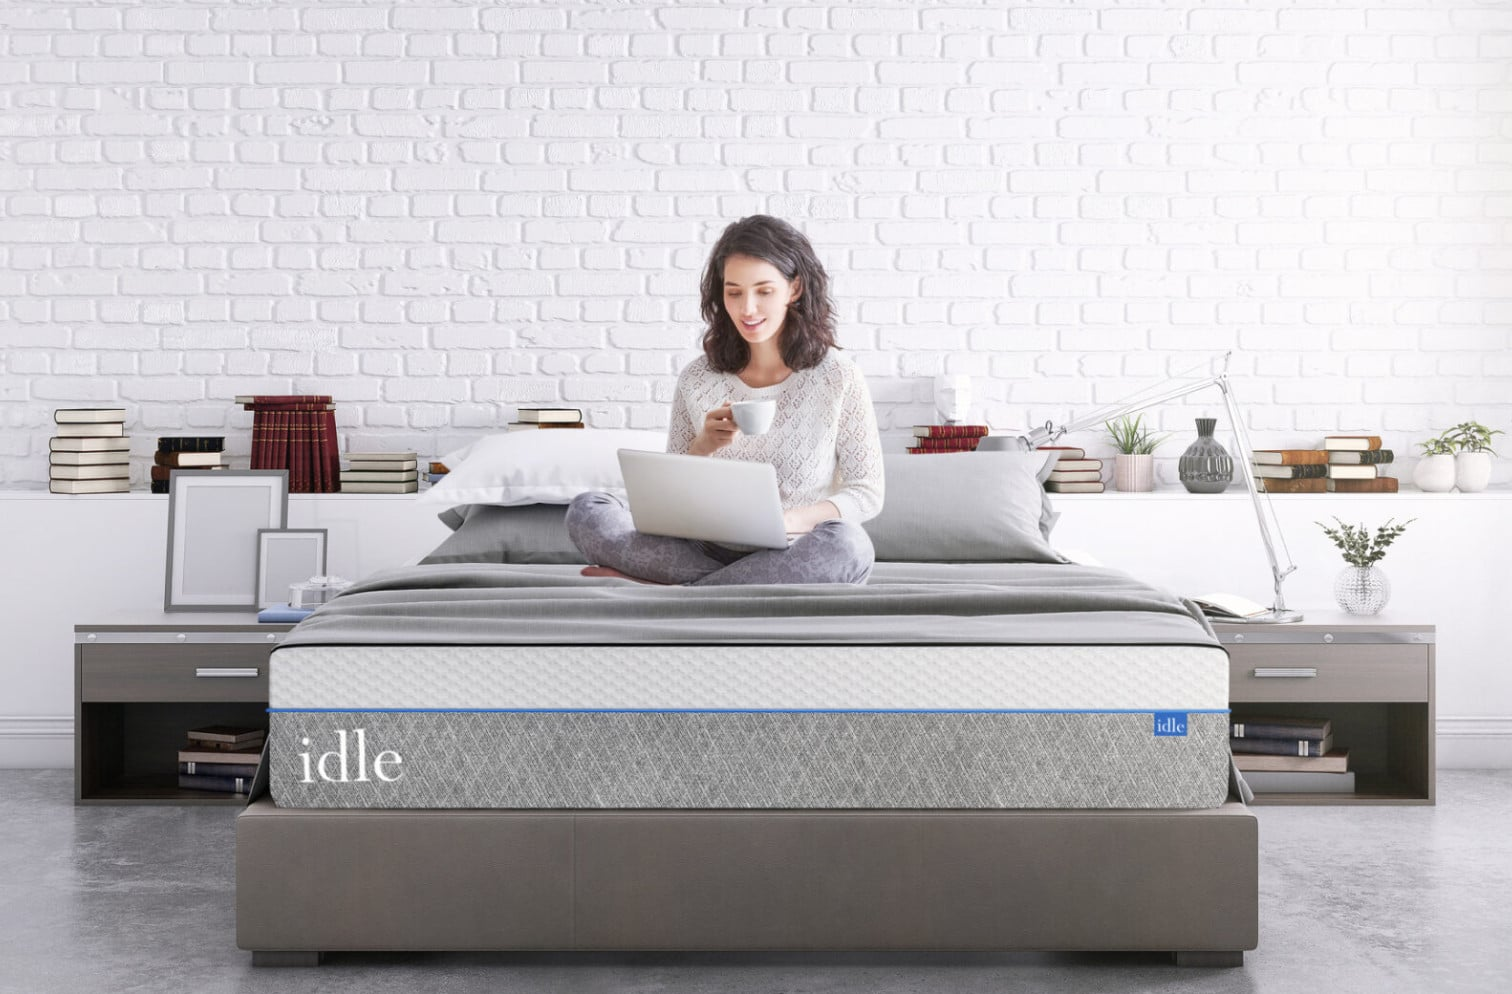 idle sleep plush gel mattress